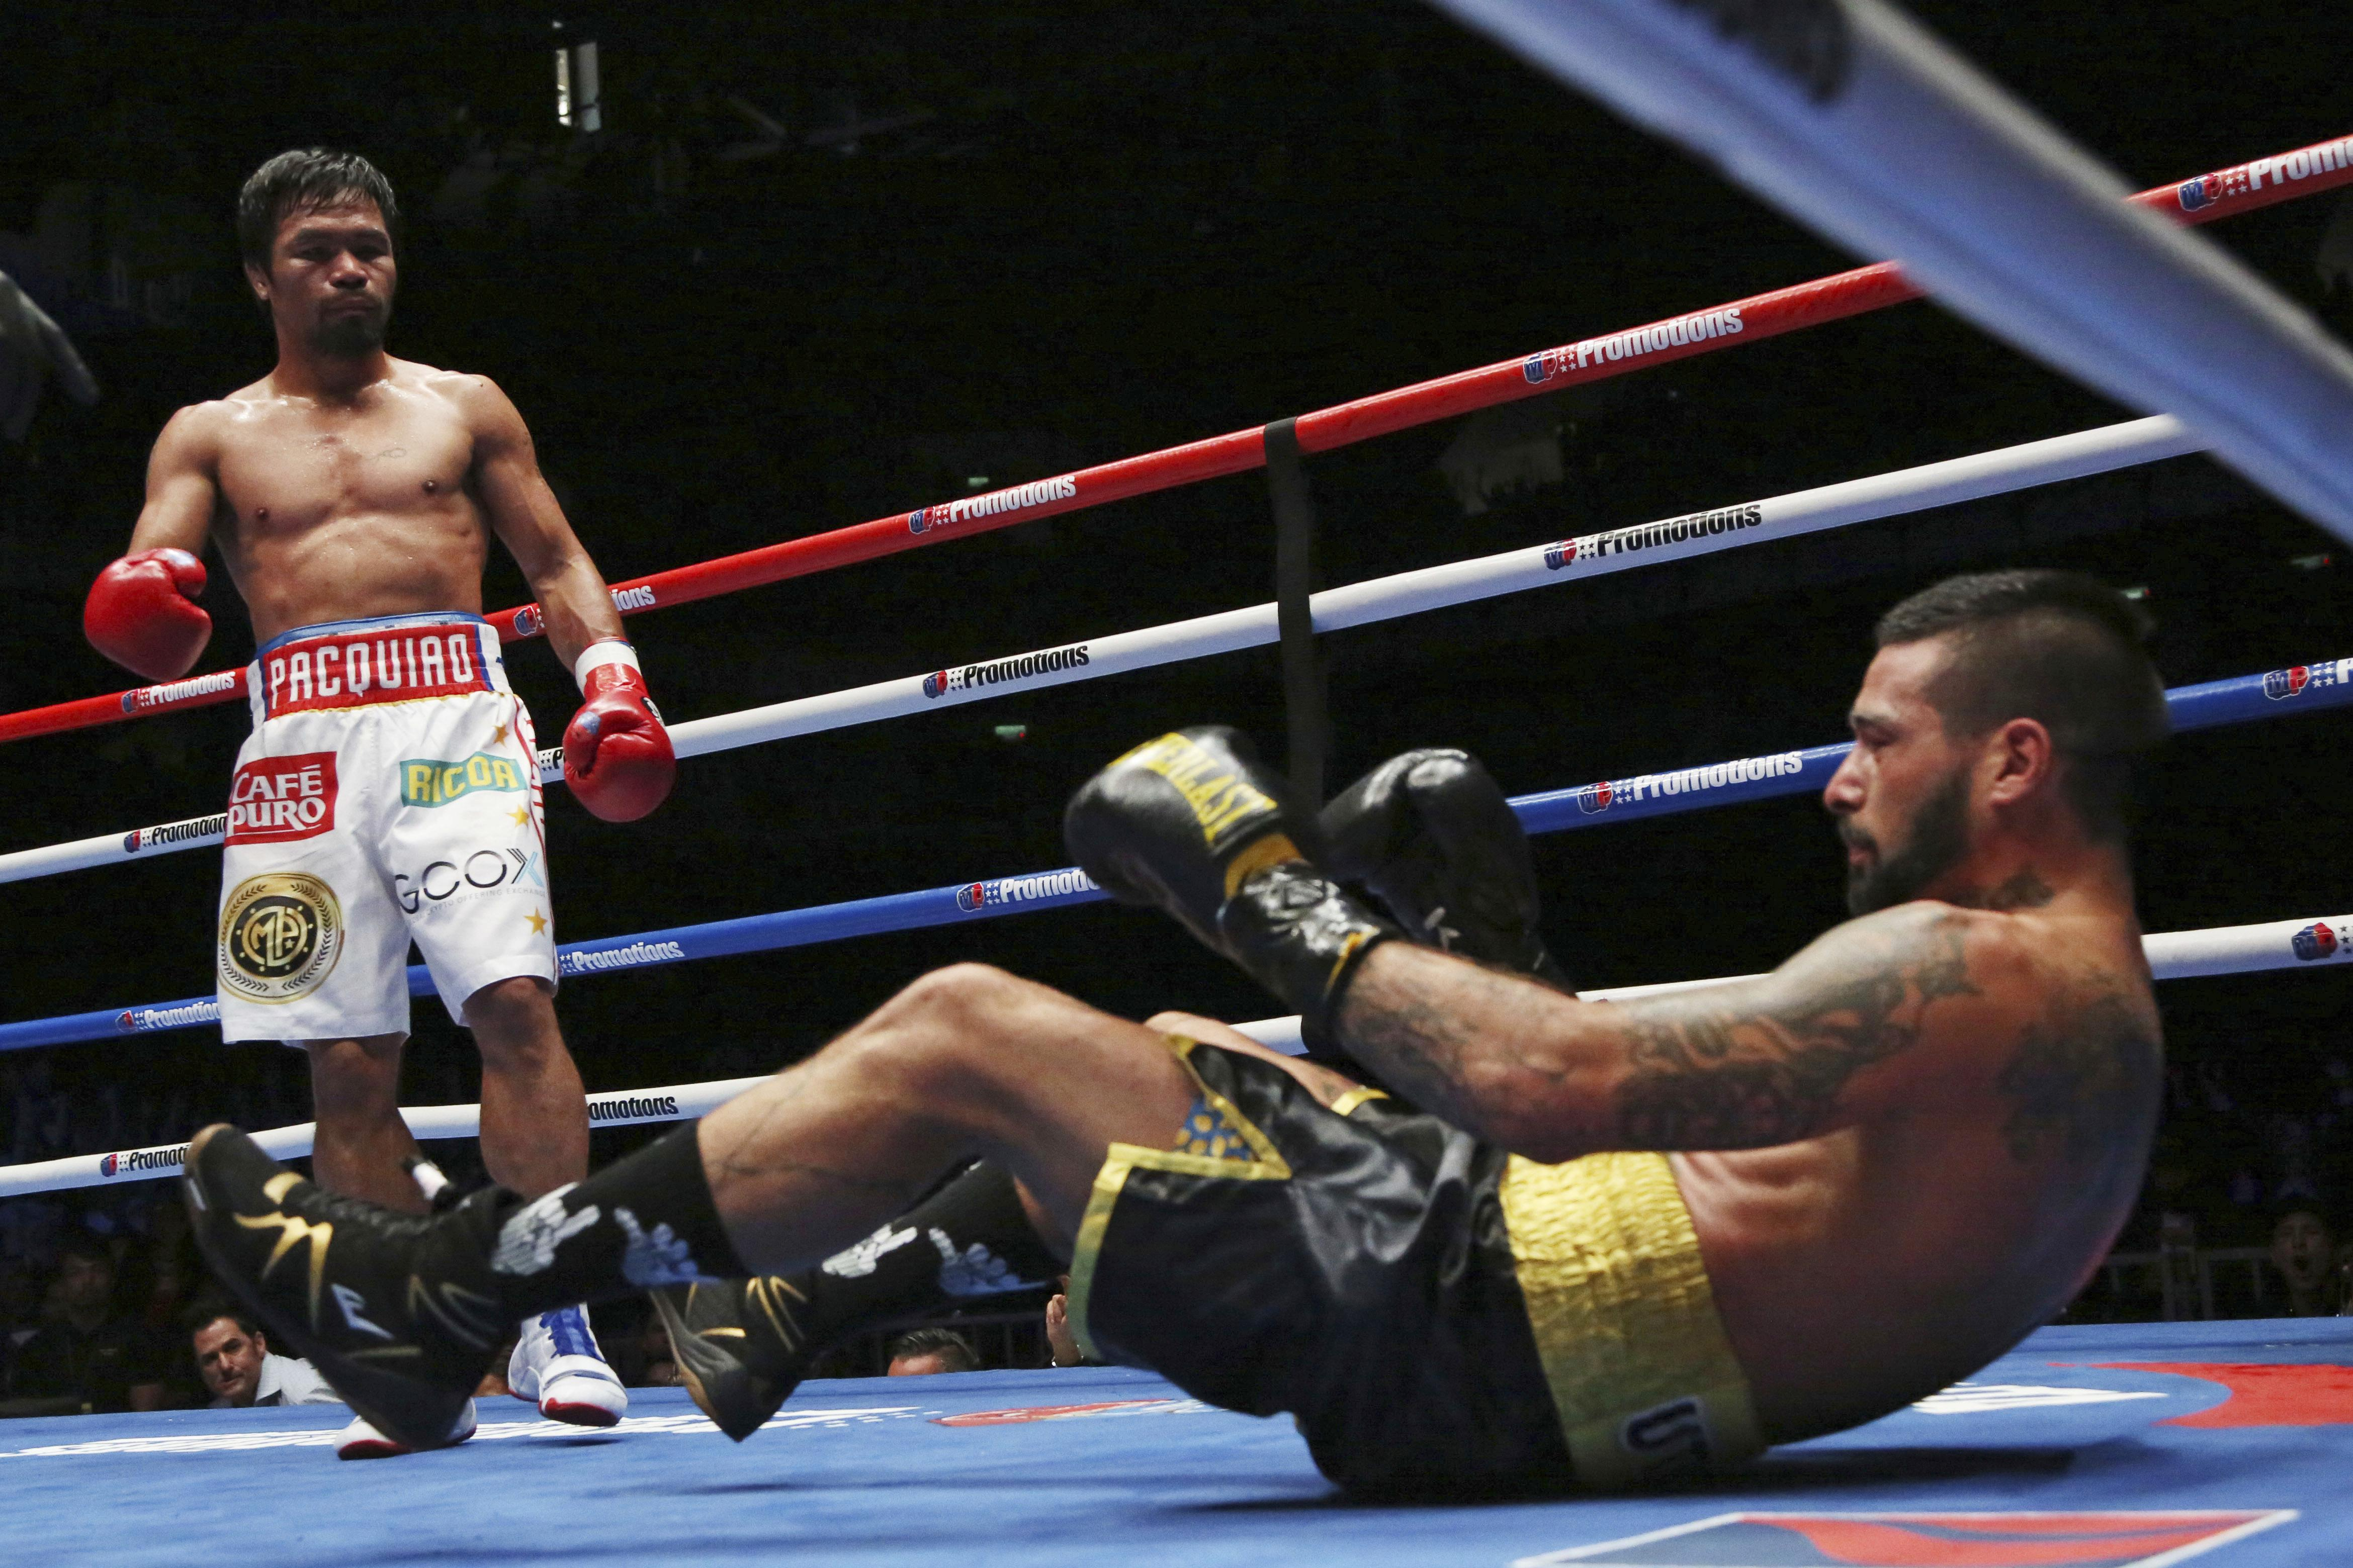 The 39-year-old knocked out Lucas Matthysse to become WBA world welterweight champion